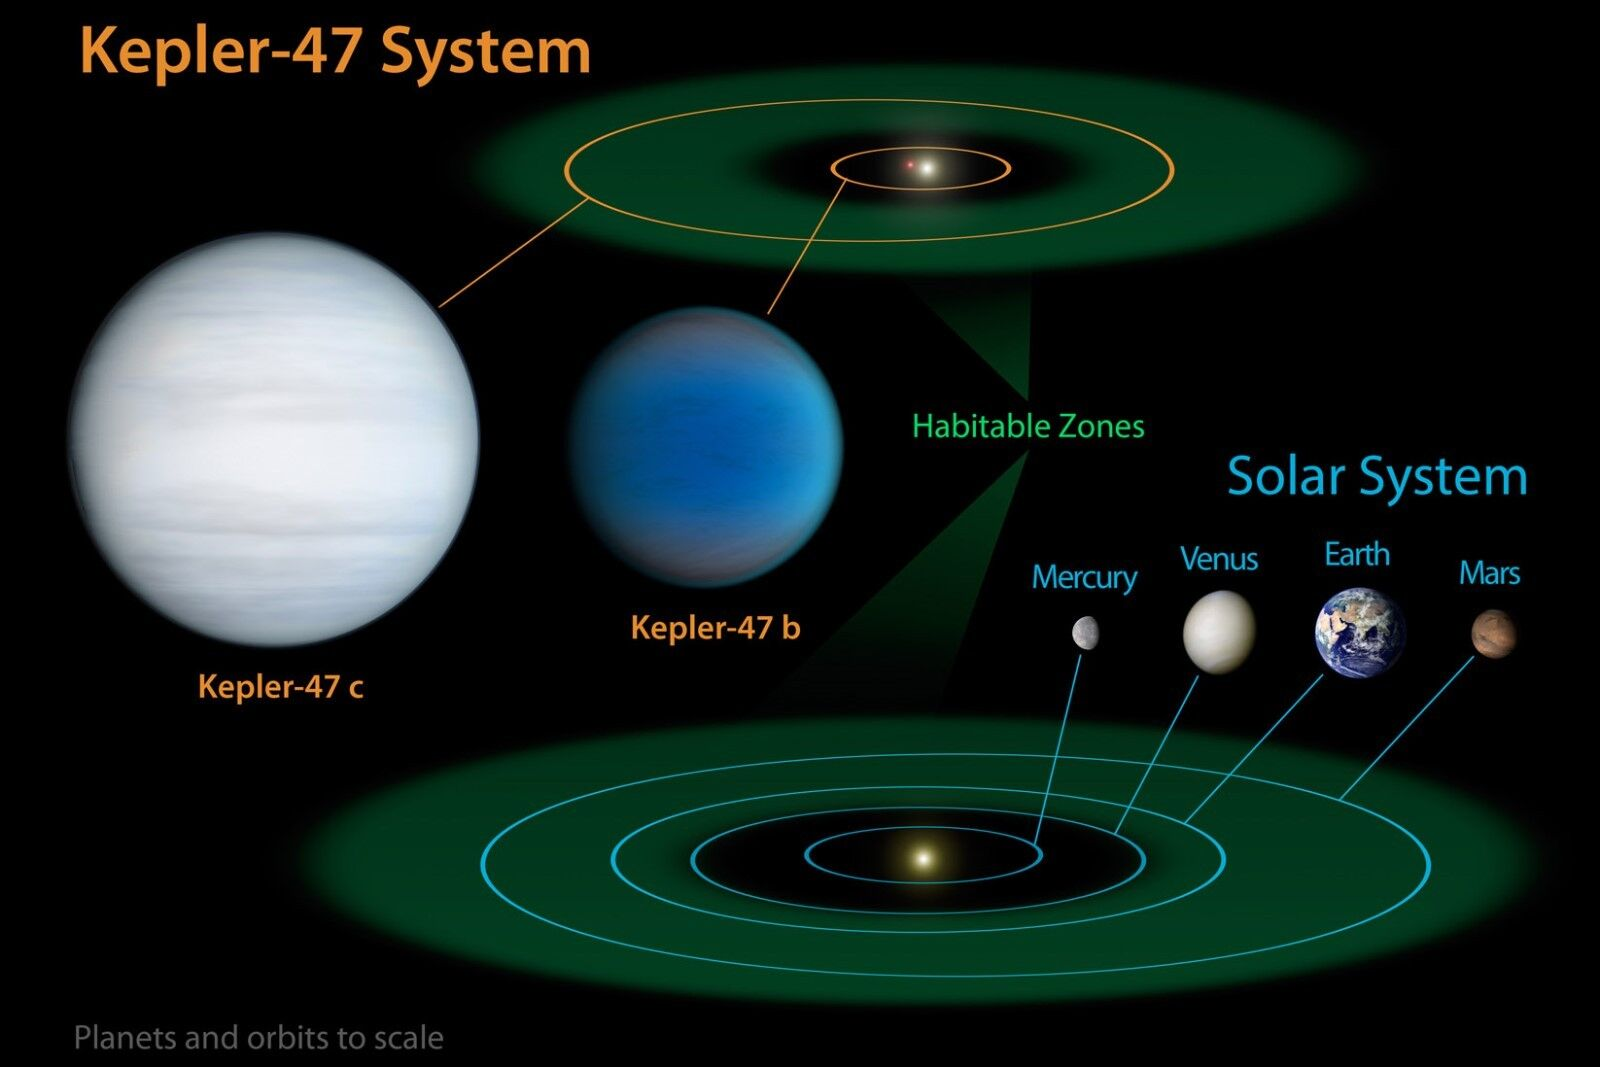 Poster, Many Dimensiones; Comparison Of Solar System To Kepler-47 Extrasolar Planets